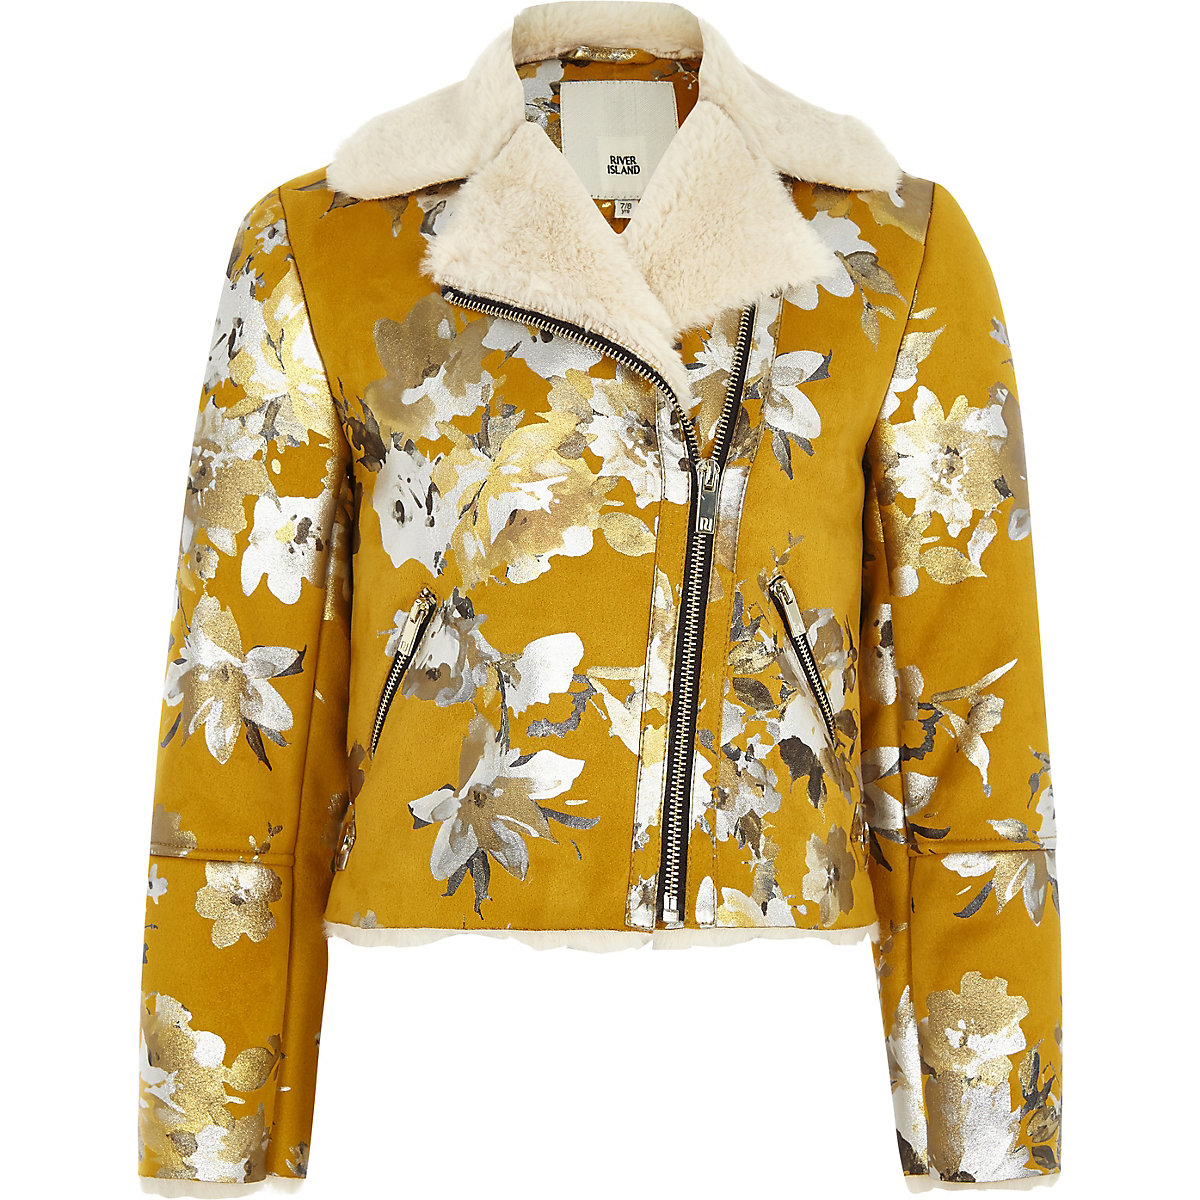 Girls yellow floral biker jacket